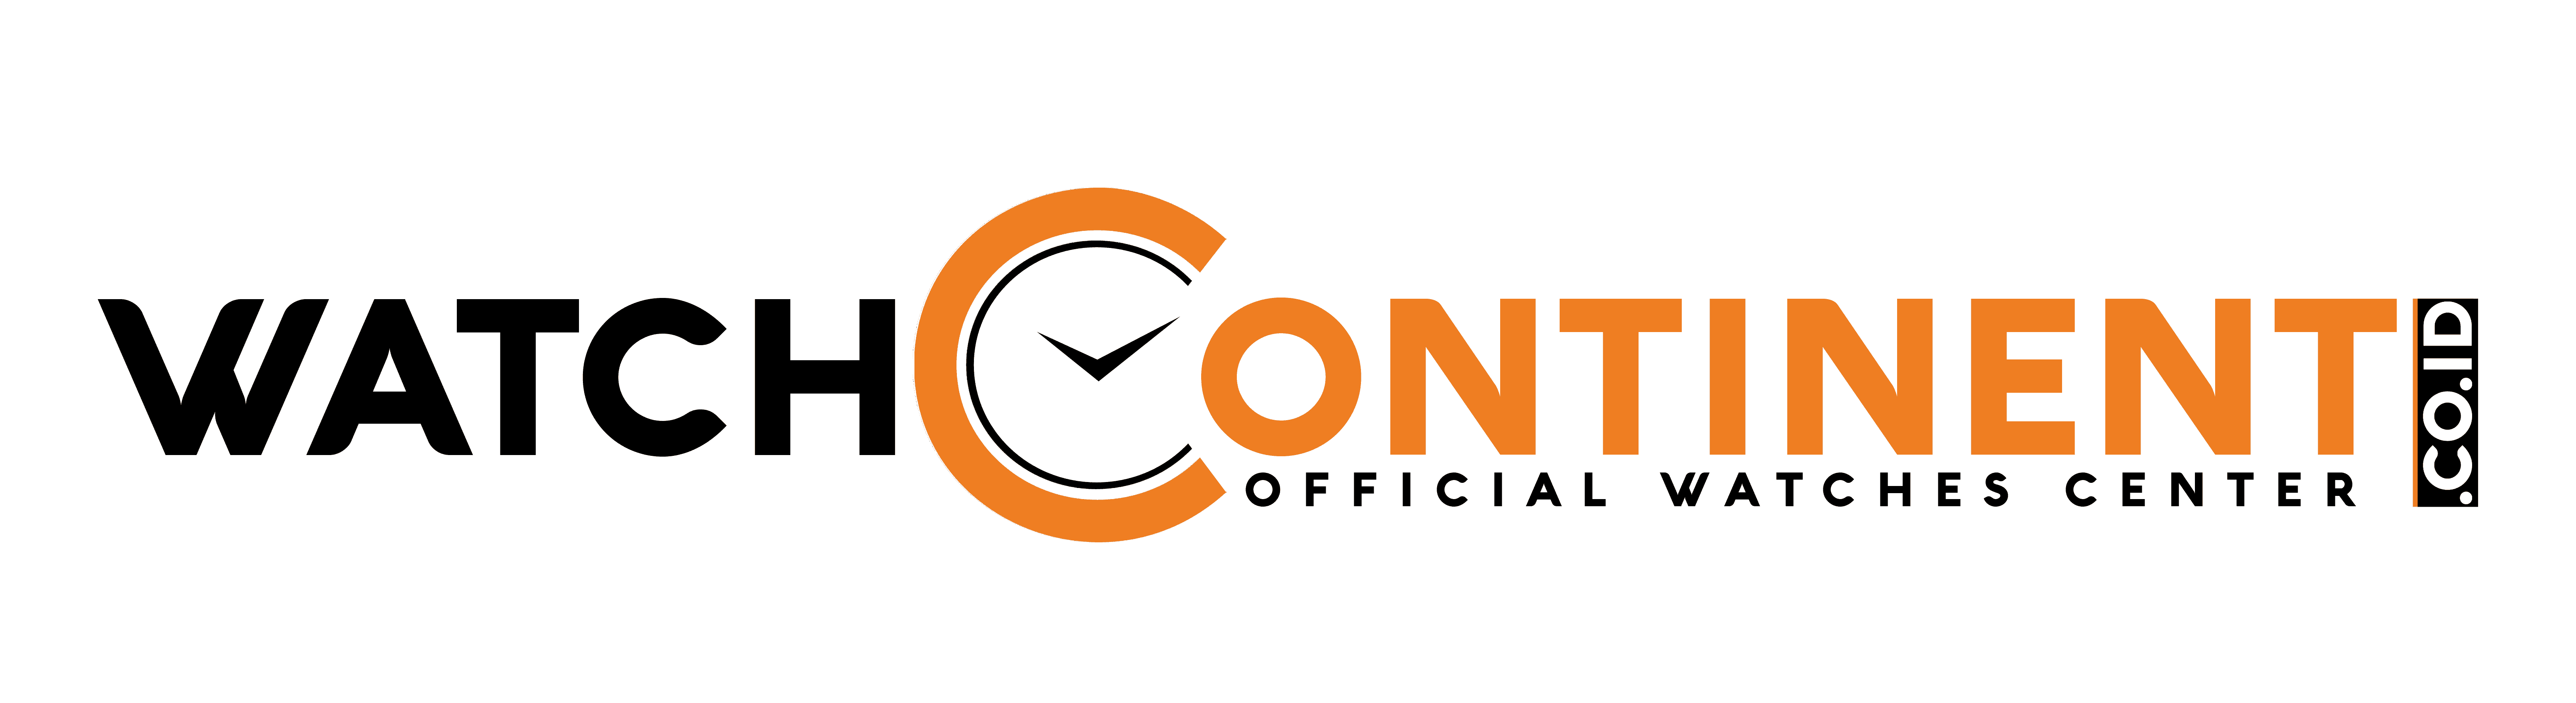 Pusat Jam Tangan Resmi No. 1 – Official Watches Center – WATCH CONTINENT